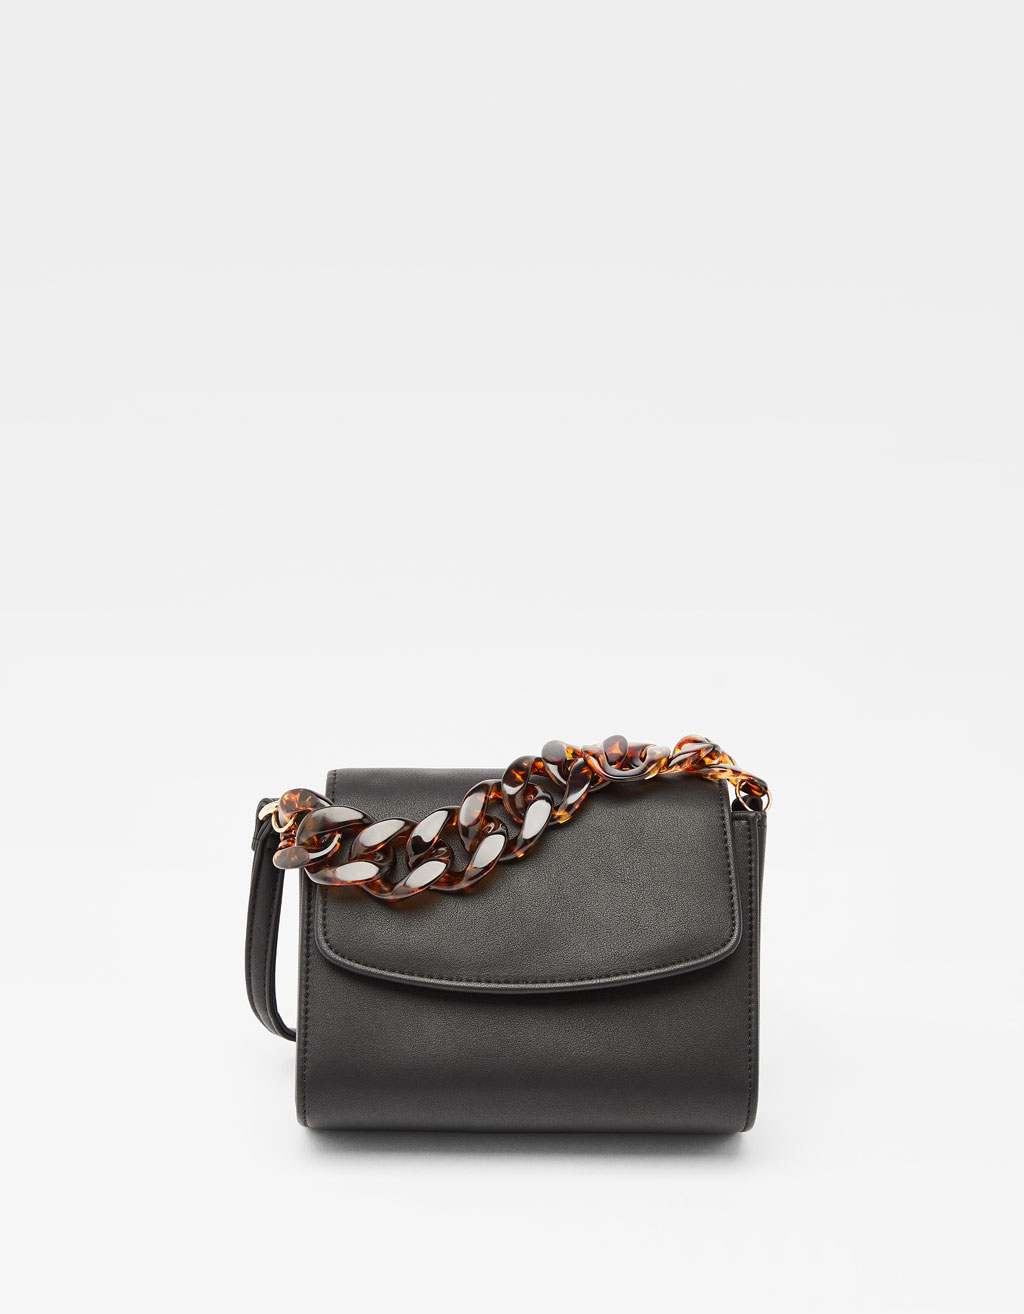 Handbag with tortoiseshell-effect chain strap